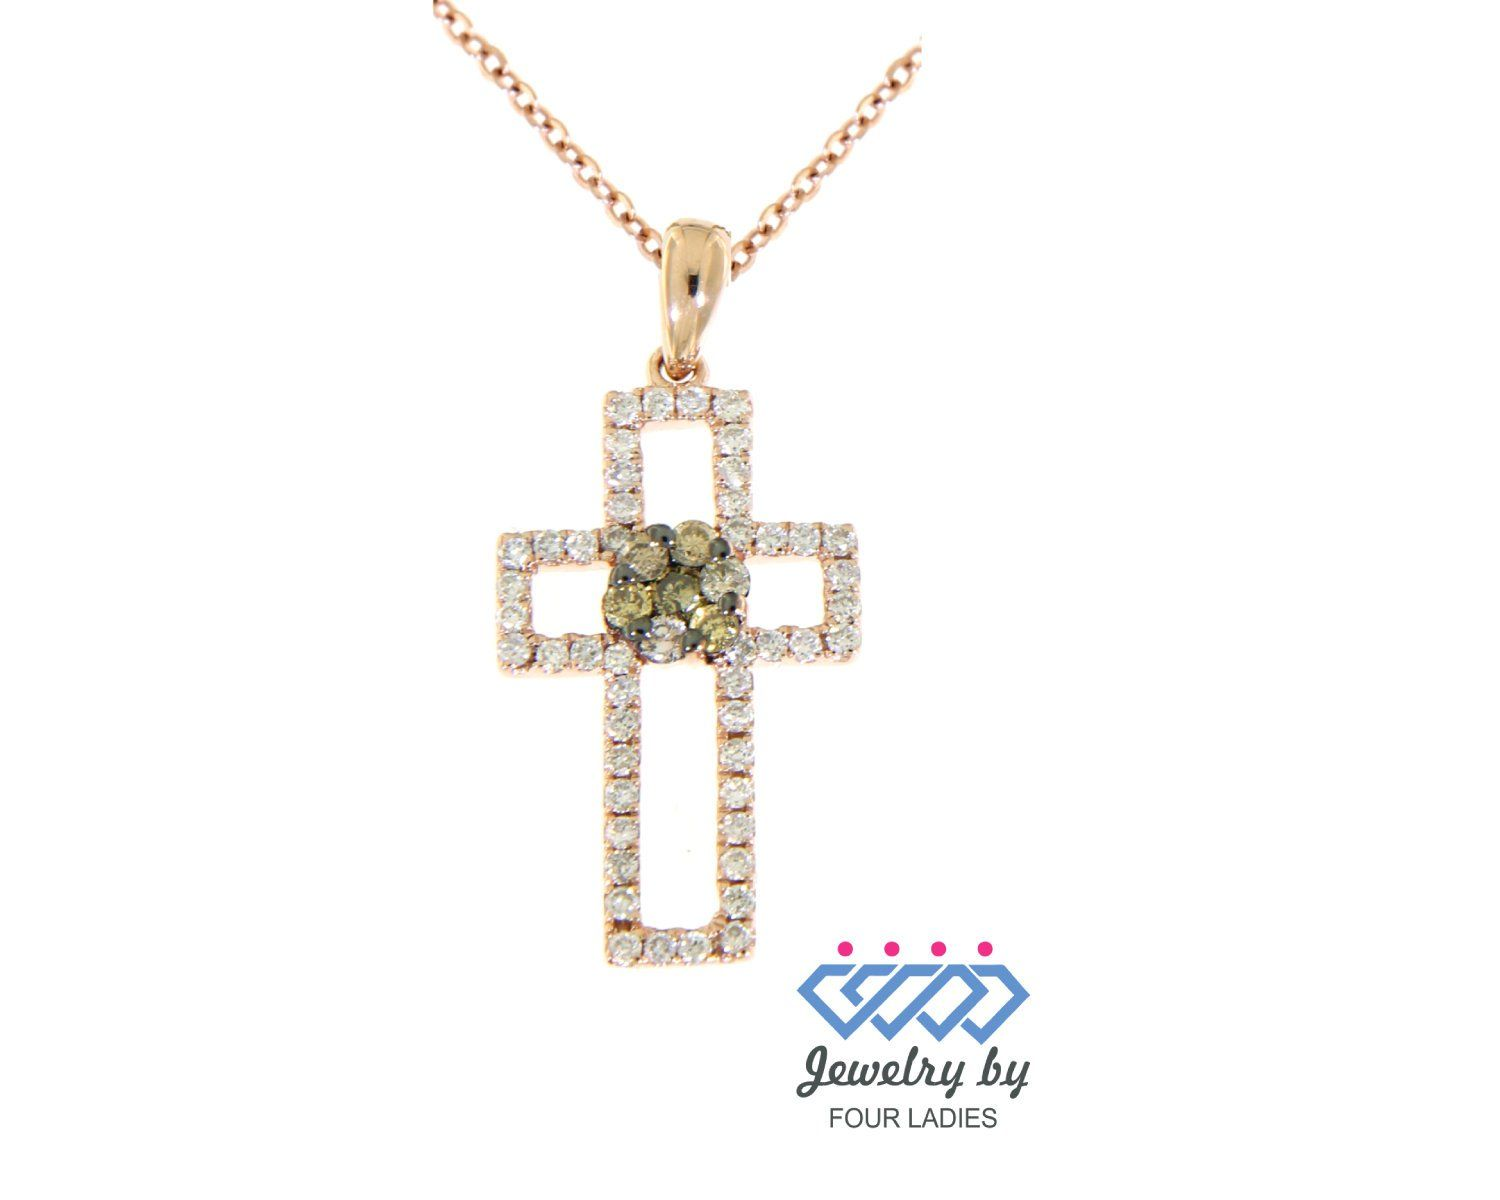 b86fbf966f09c2 Solid Real New Designer Cross Diamond Pendant 14K Rose Gold 0.40Ct Handmade  Religious Jesus Necklaces For Women| Dainty Pendant| Daily Wear by ...